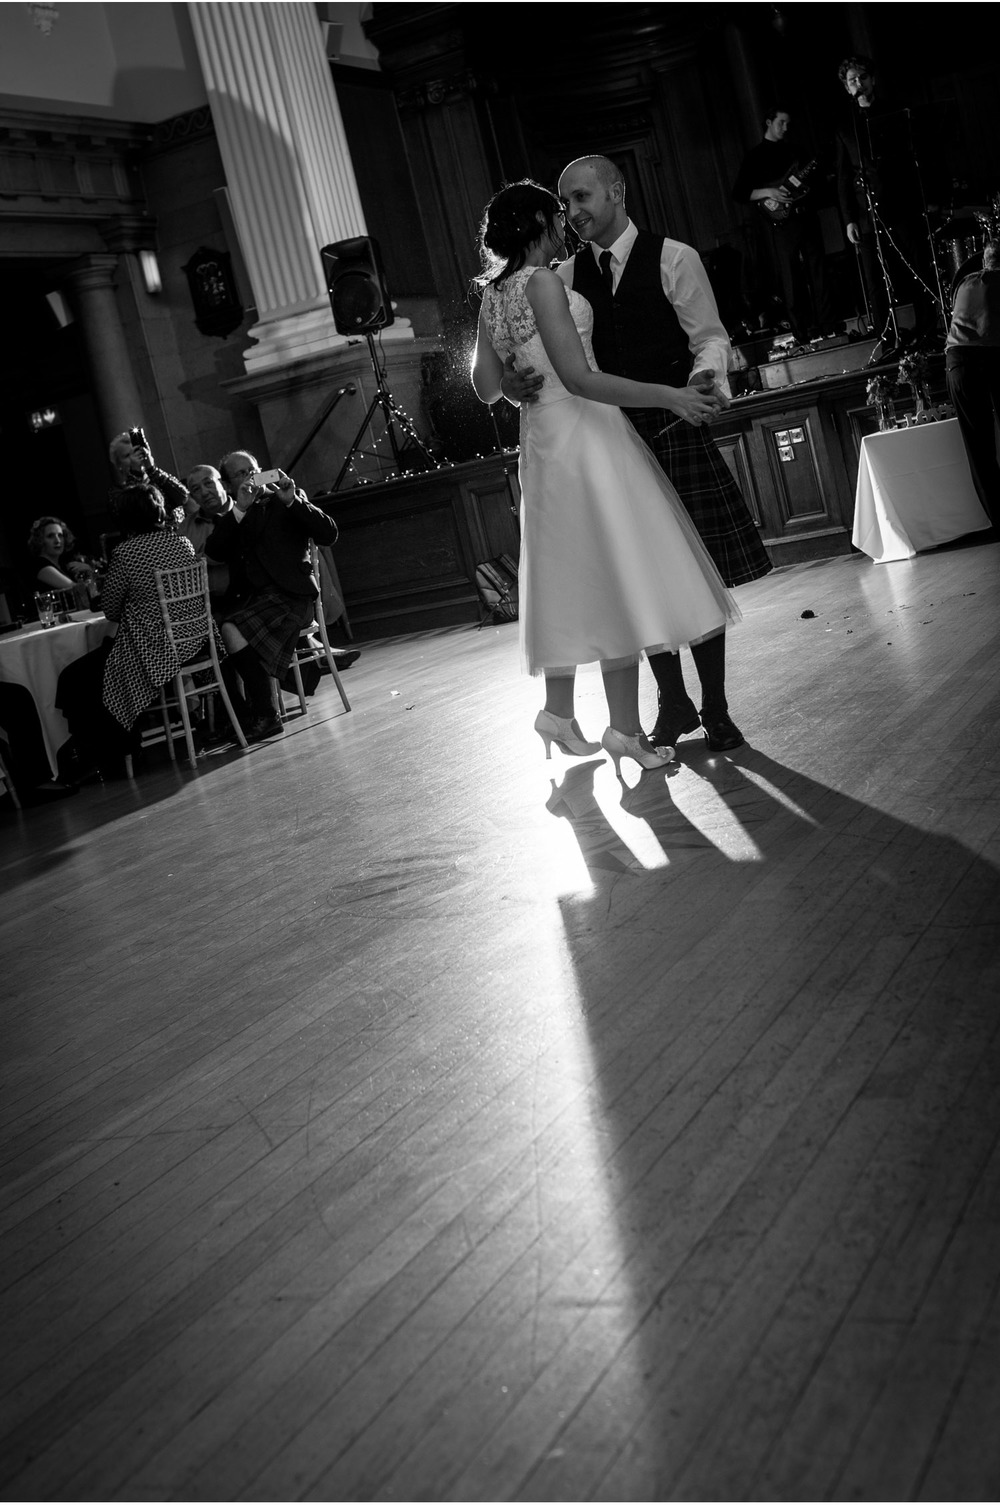 Aoife and Owen's wedding-19.jpg